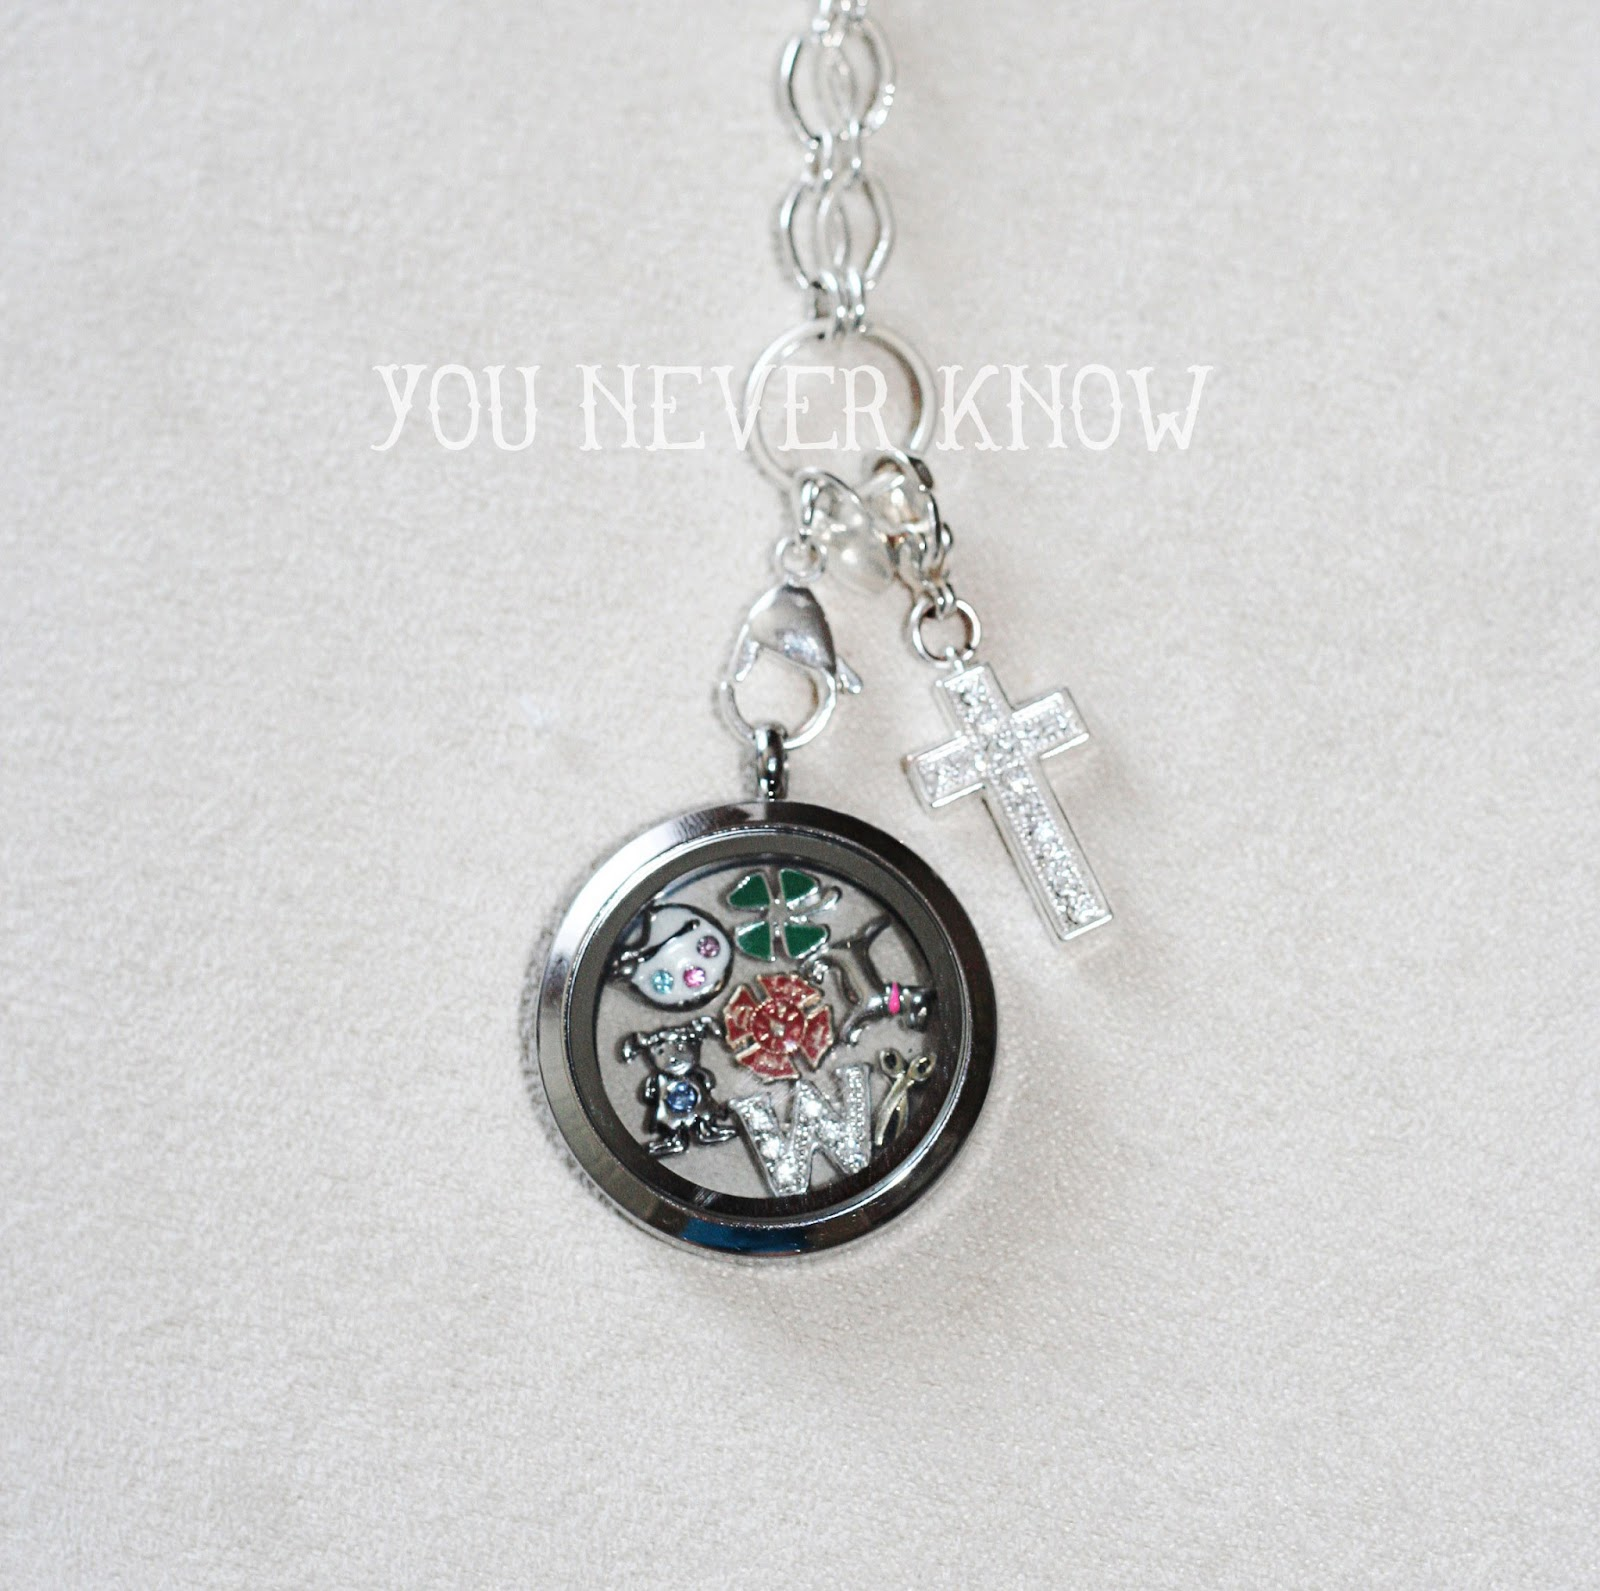 you never by andrea vanhooser womack my origami owl